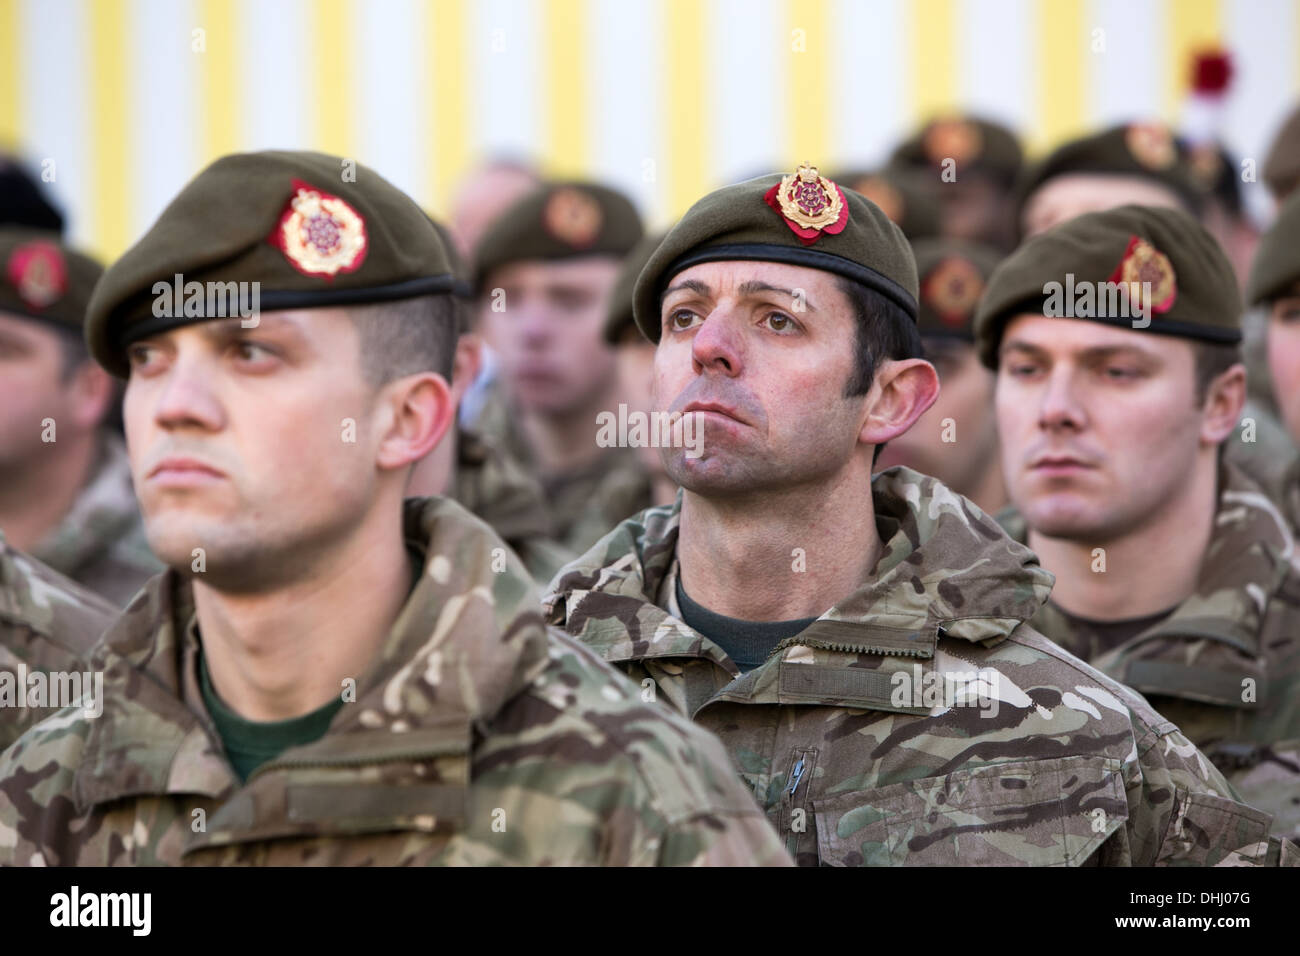 10-11-13 MANCHESTER , England. Remembrance Sunday Service at St Peter's Square , Manchester City Centre. - Stock Image